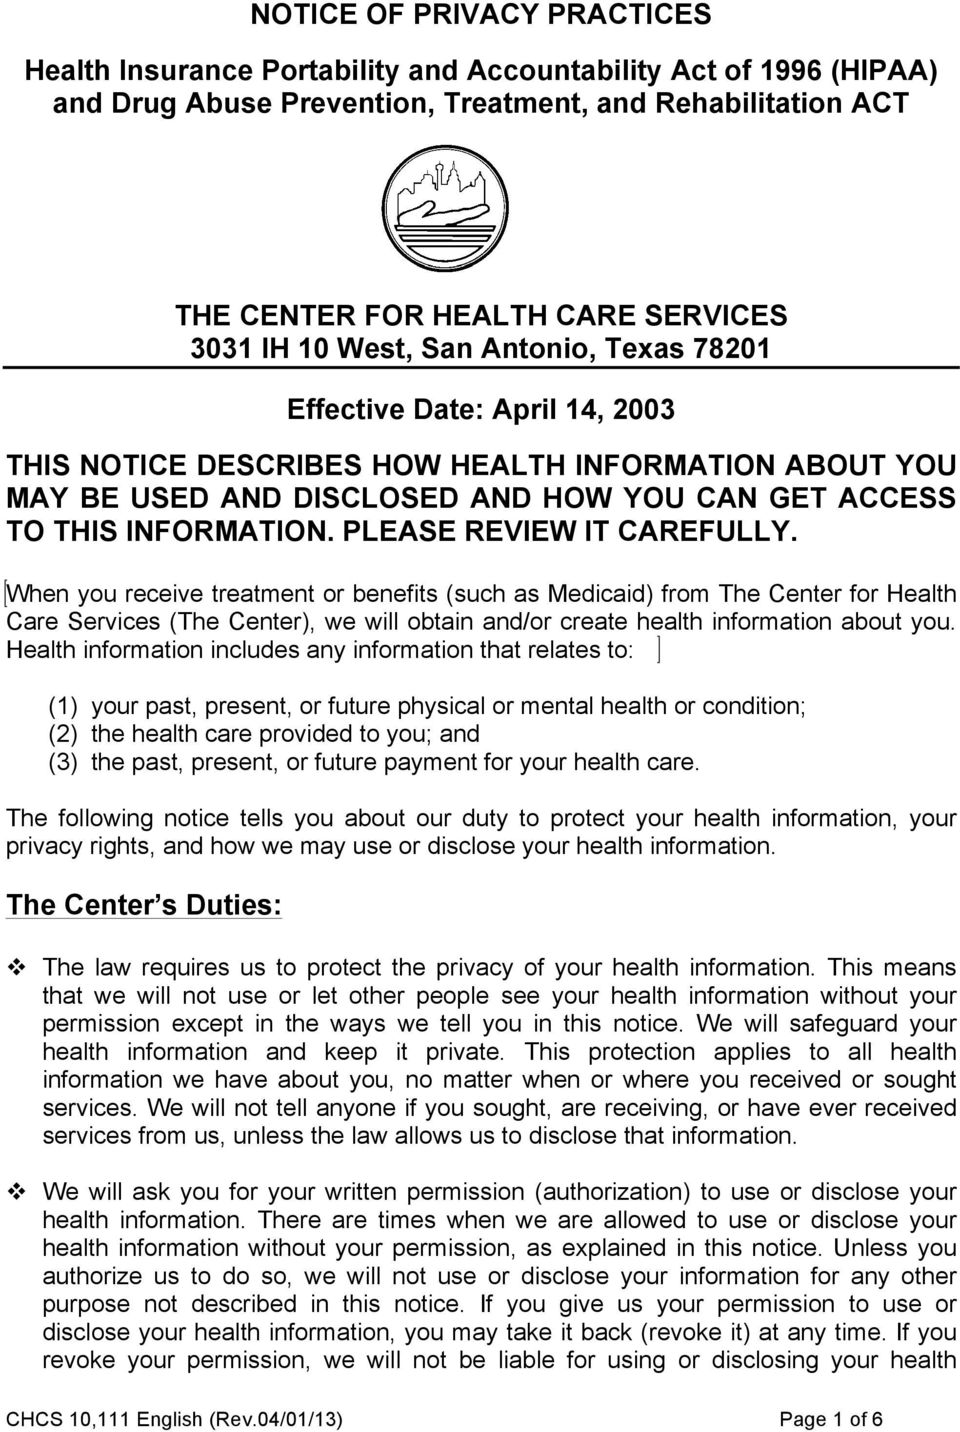 PLEASE REVIEW IT CAREFULLY. When you receive treatment or benefits (such as Medicaid) from The Center for Health Care Services (The Center), we will obtain and/or create health information about you.